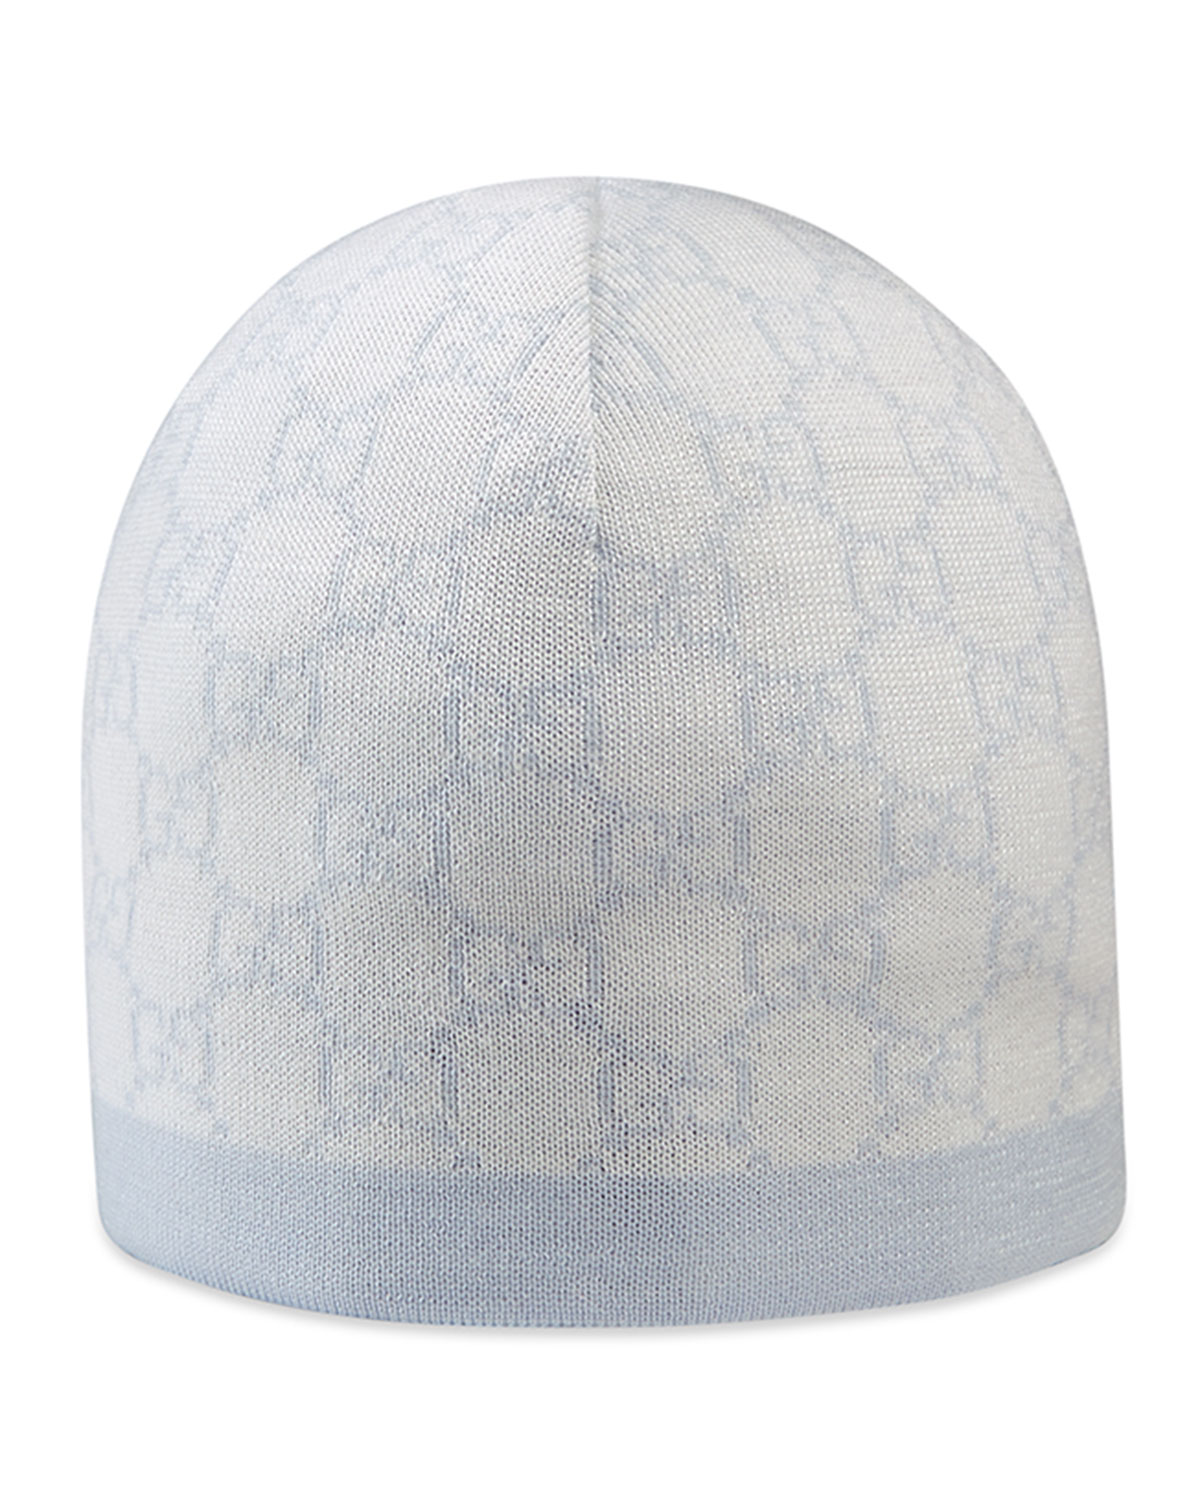 Gucci Wool GG Baby Hat   Neiman Marcus fe1d2f96db5